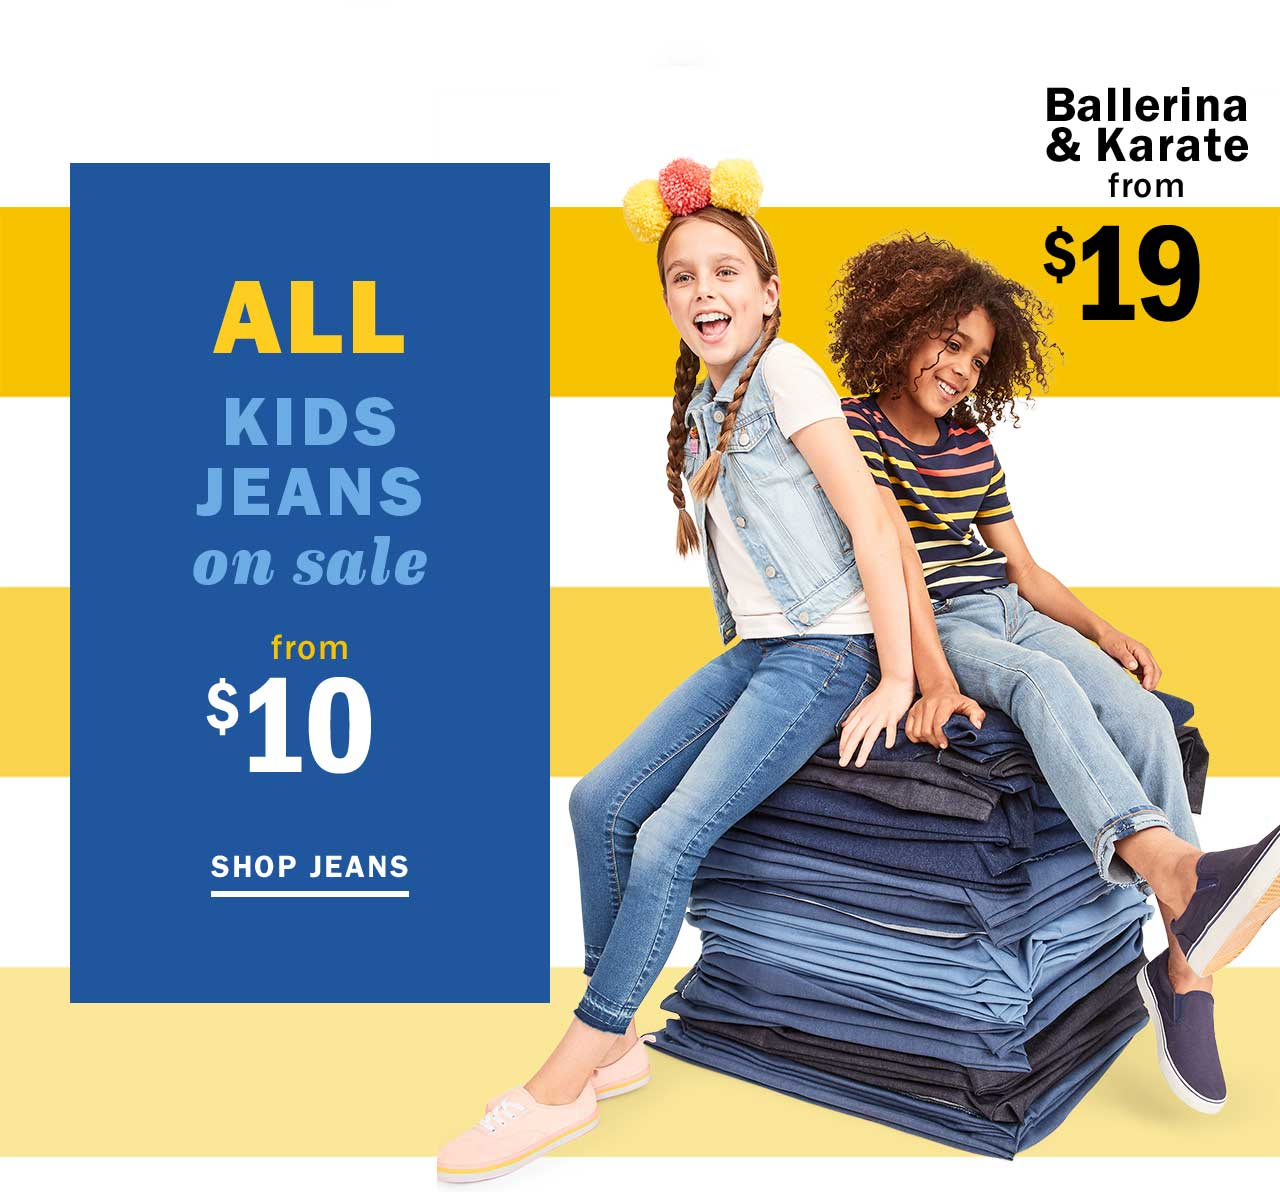 ALL Kids JEANS on sale from $10 | SHOP JEANS